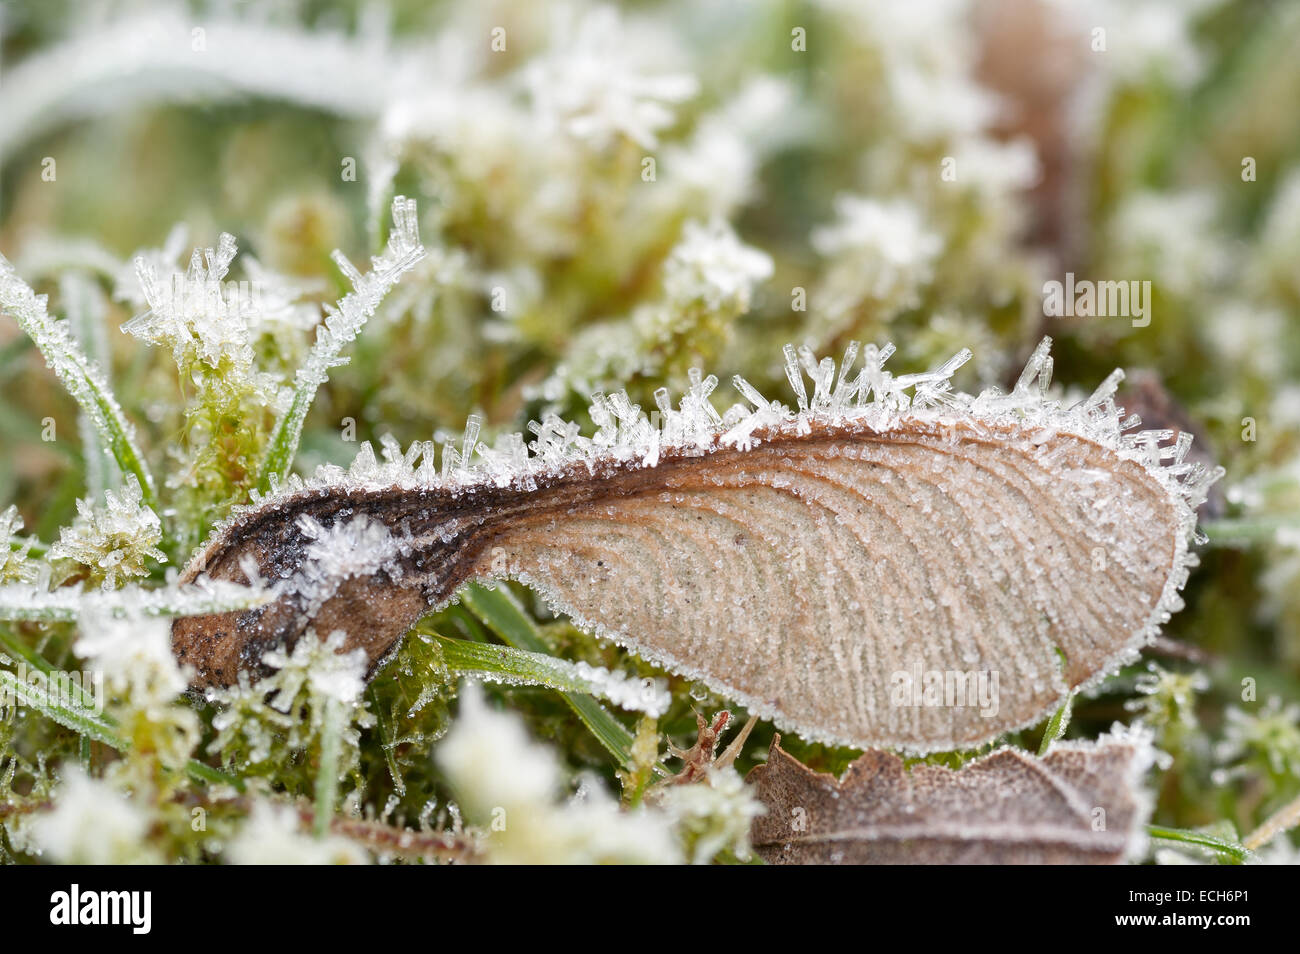 waiting to germinate in the spring maple acer seeds are dormant covered in a harsh coating of frost and ice in winter - Stock Image